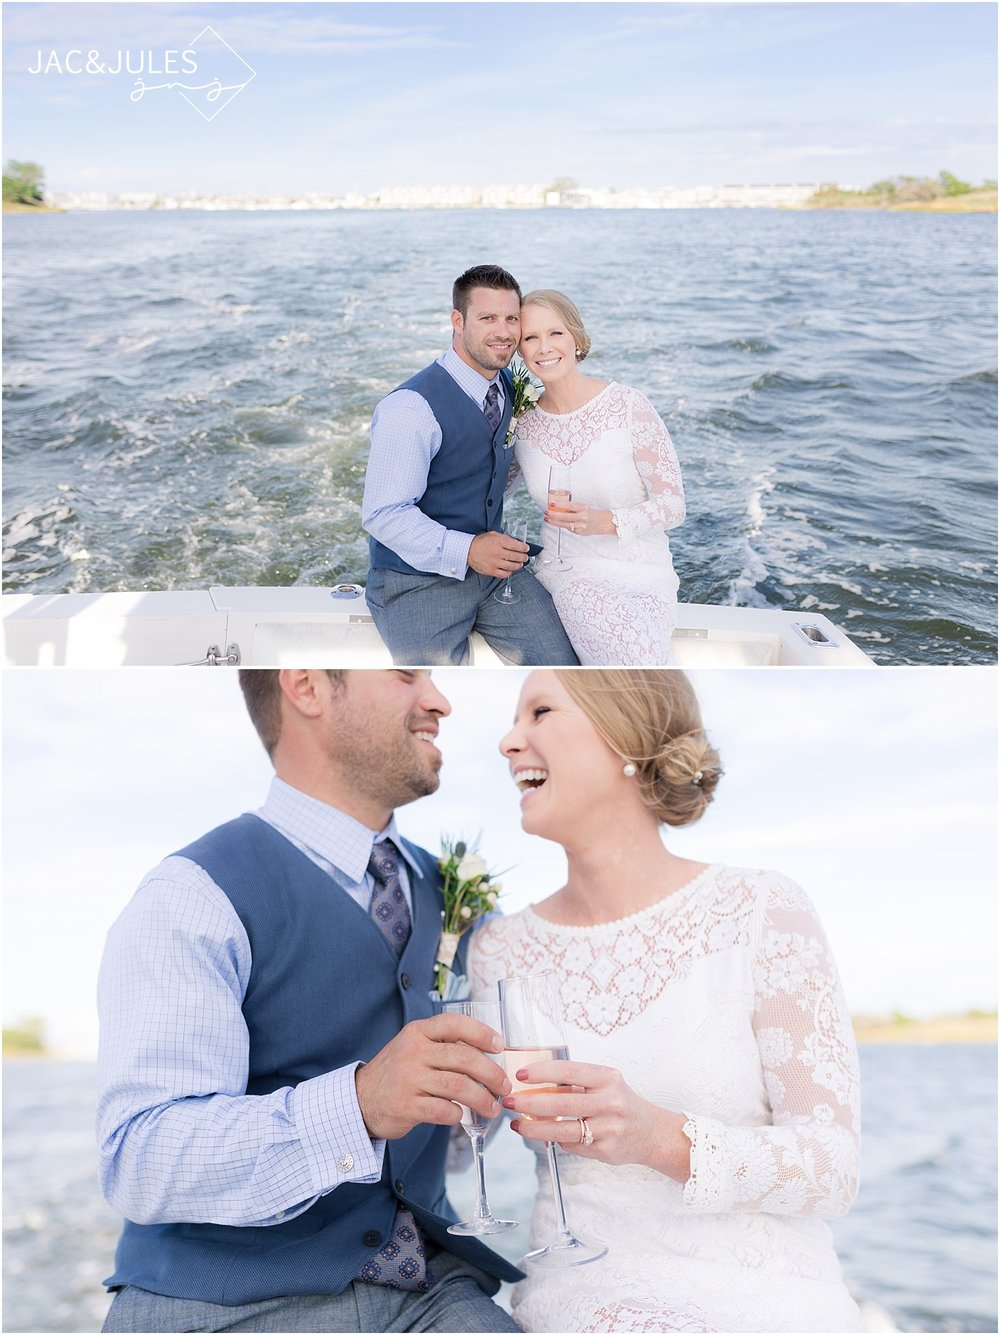 romantic boat ride with bride and groom in nj